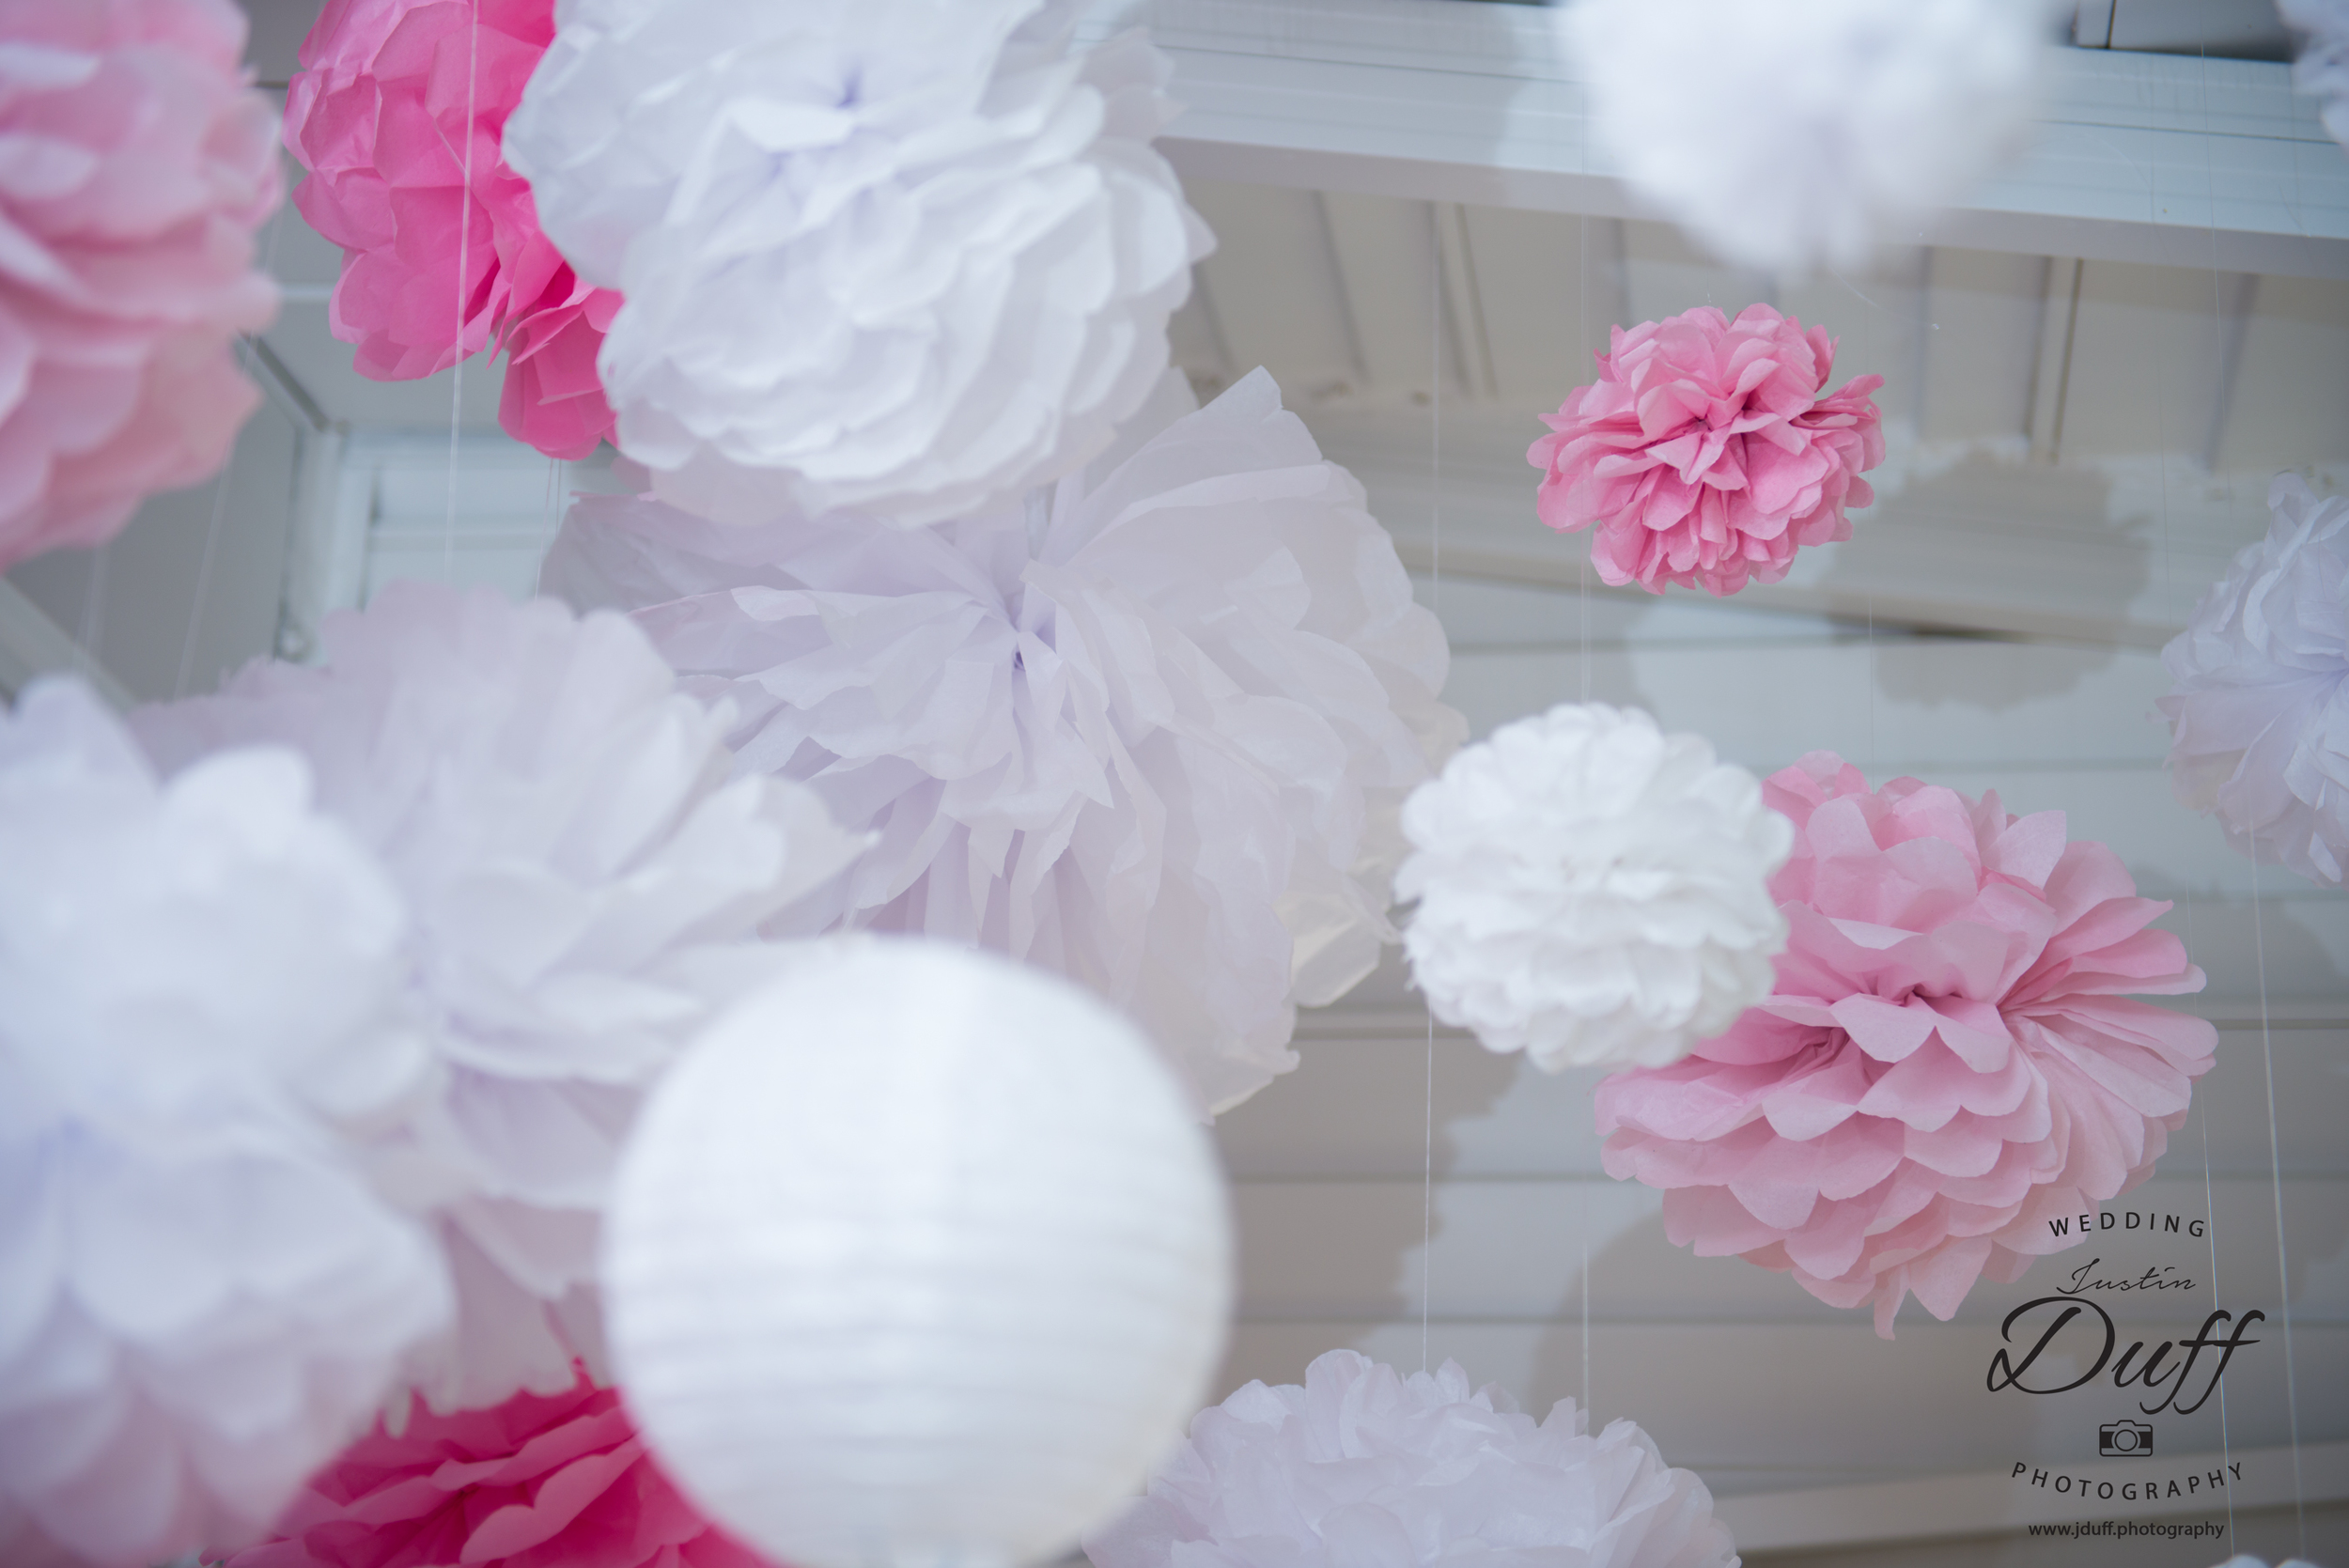 Firefighter Park Wedding - Troy MI wedding photographer Hand Made decorations paper puff balls.